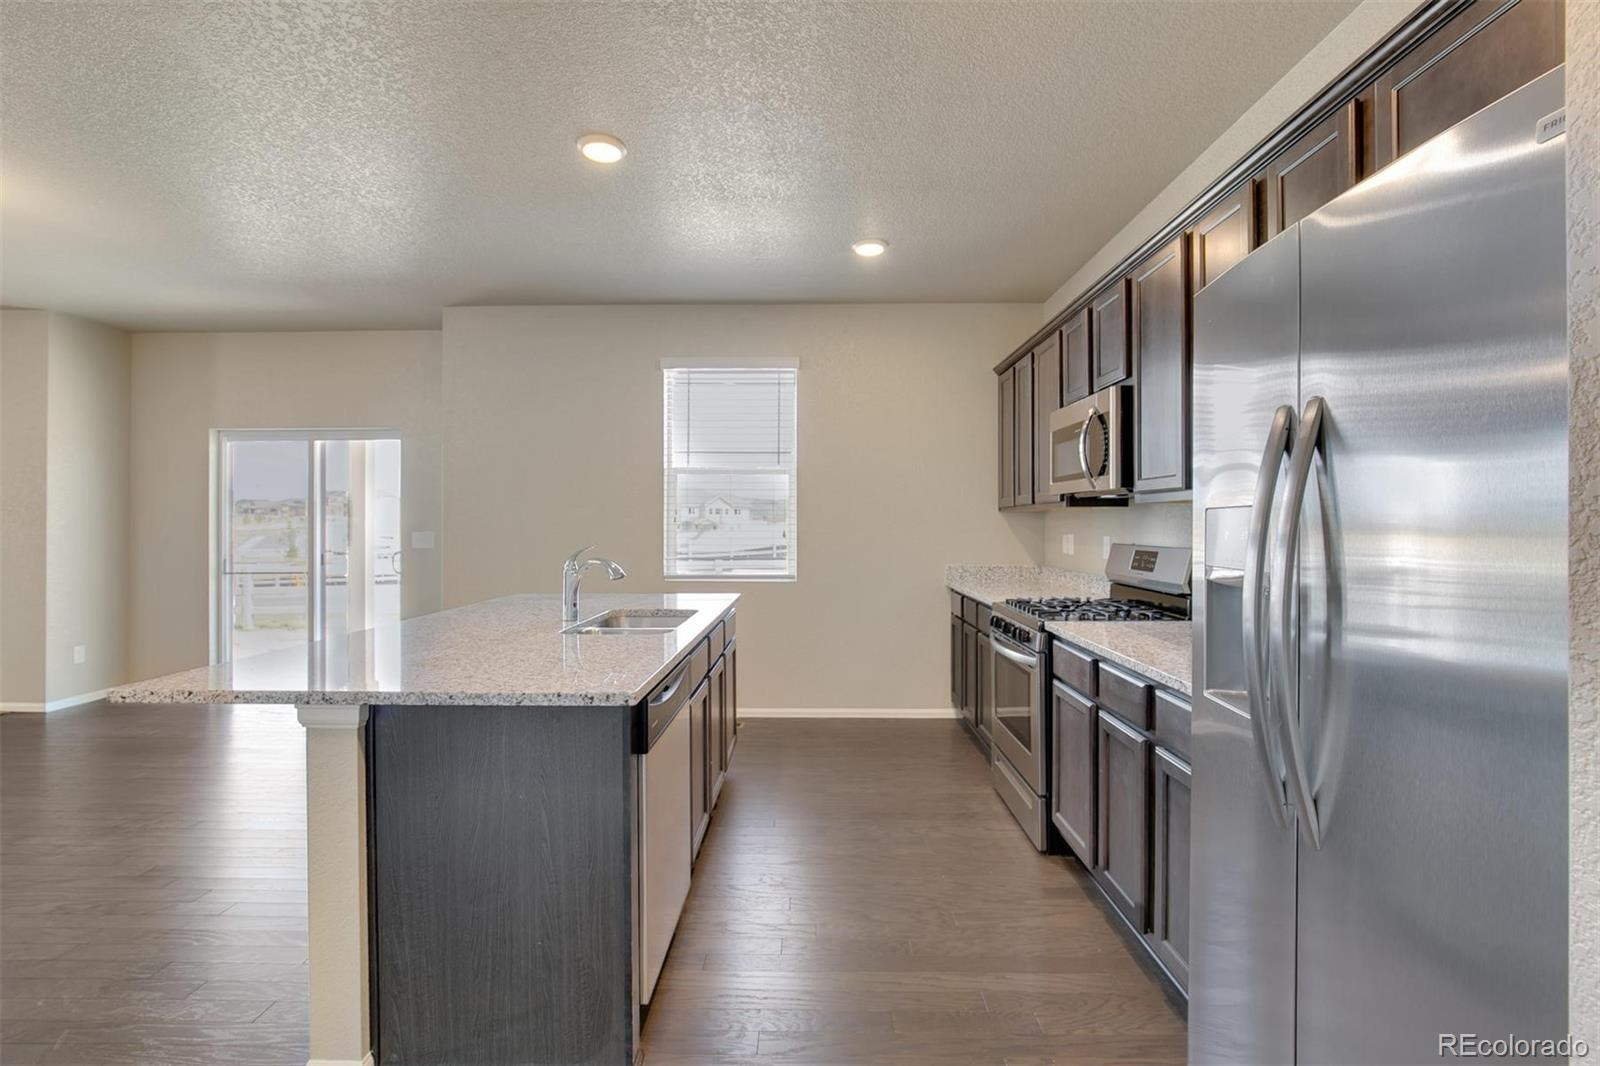 MLS# 4867430 - 8 - 915 Camberly Drive, Windsor, CO 80550